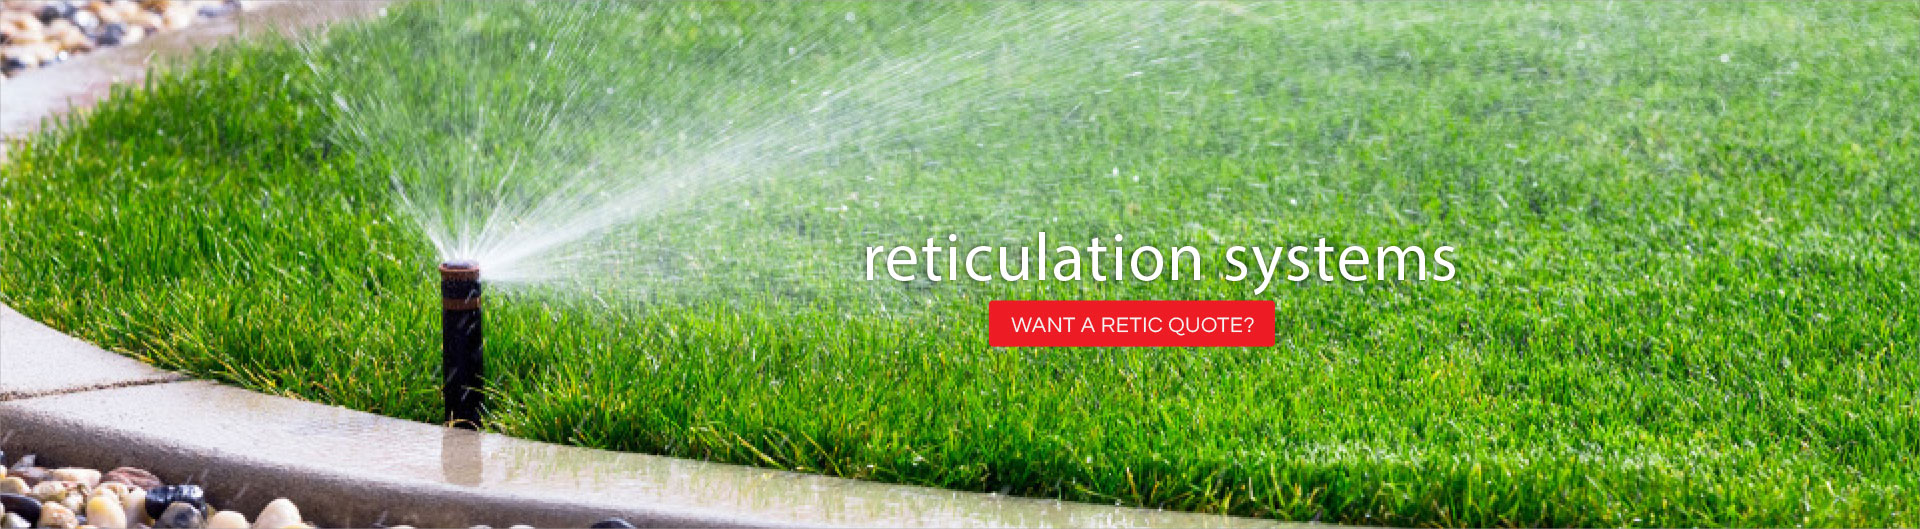 WANT A RETIC QUOTE?